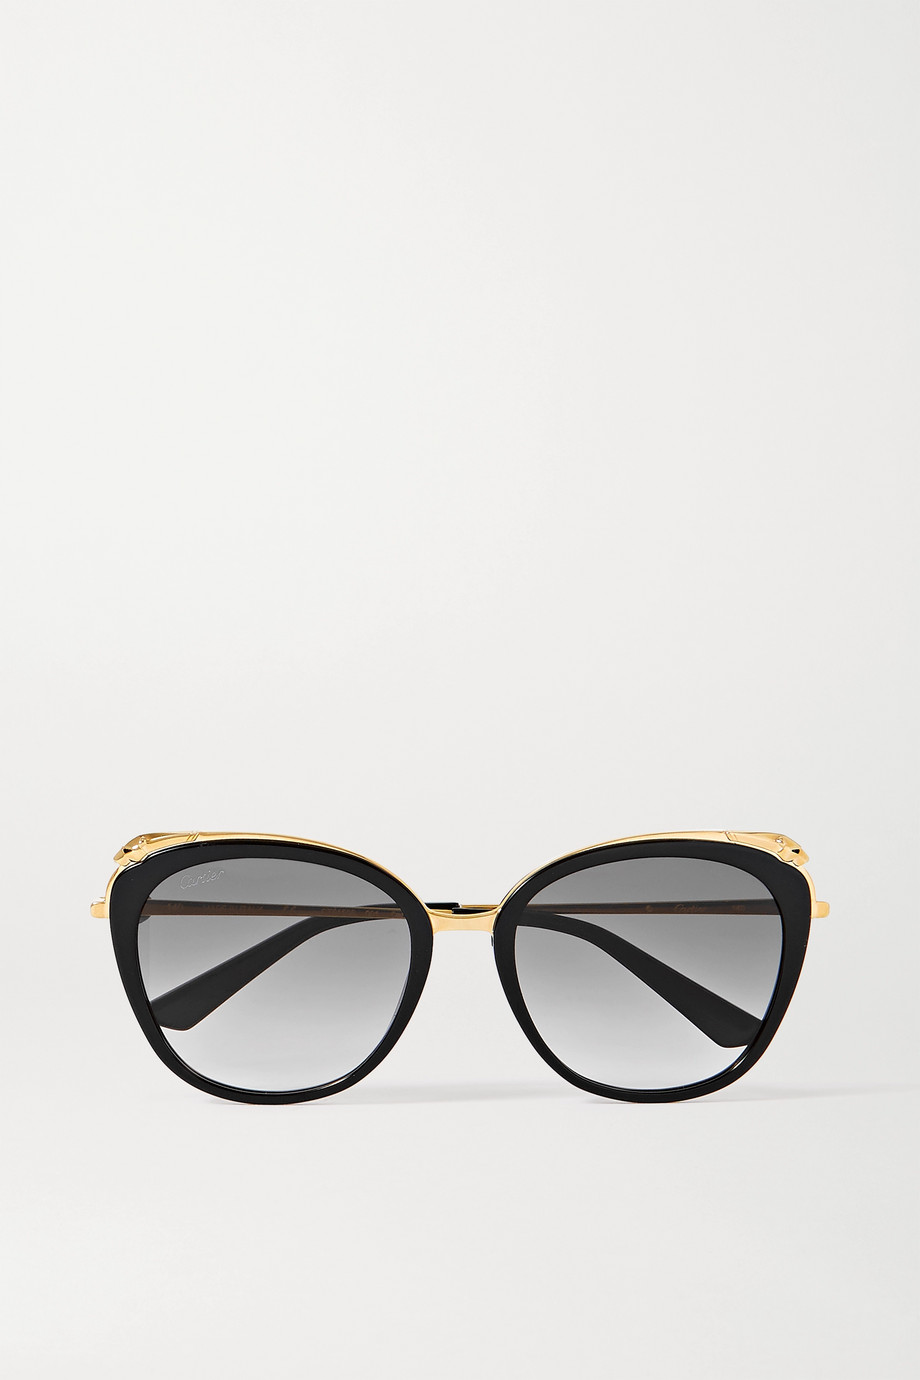 Cartier Eyewear Cat-eye acetate and gold-tone sunglasses